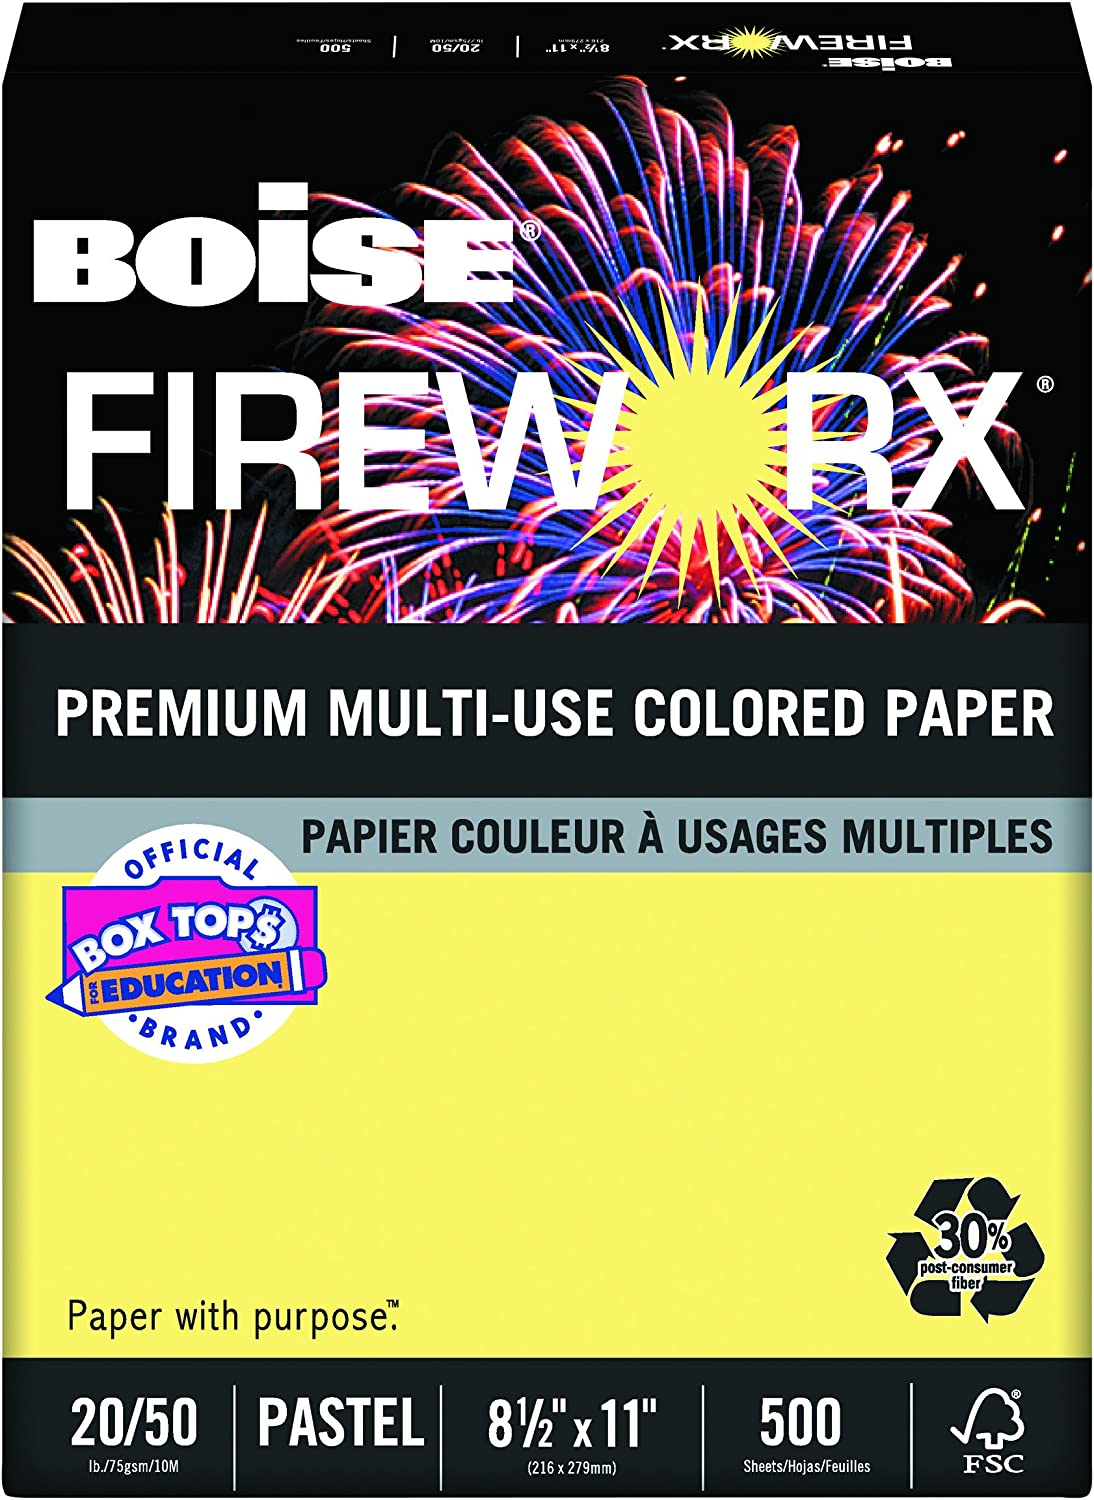 Boise Fireworx Color Copy/Laser Paper, 20 lb, Letter Size (8.5 x 11), Crackling Canary, 500 Sheets (MP2201-CY)